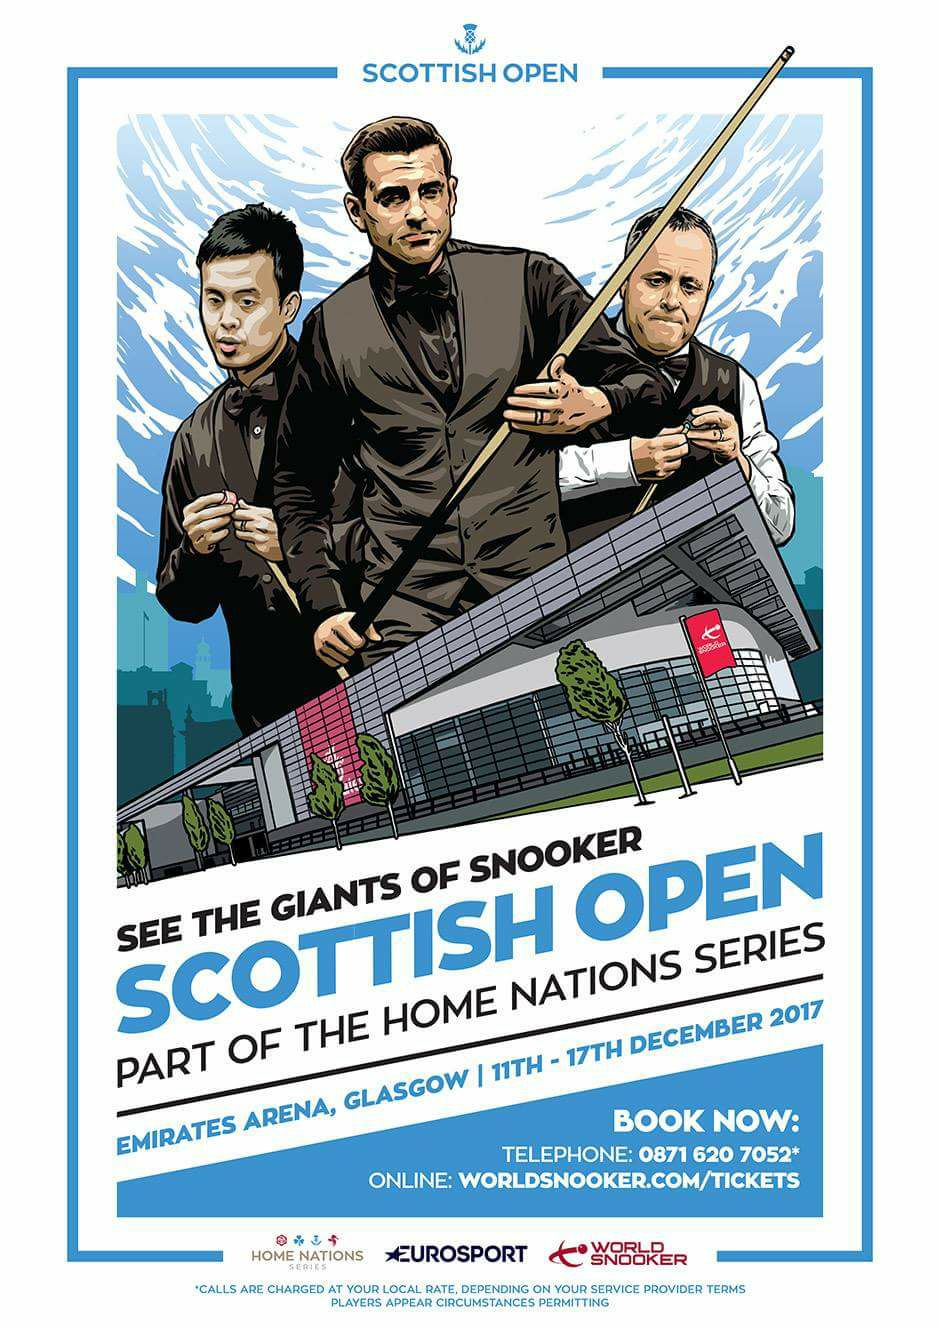 World Snookers 'Scottish Open' - Part of The Home Nations Series